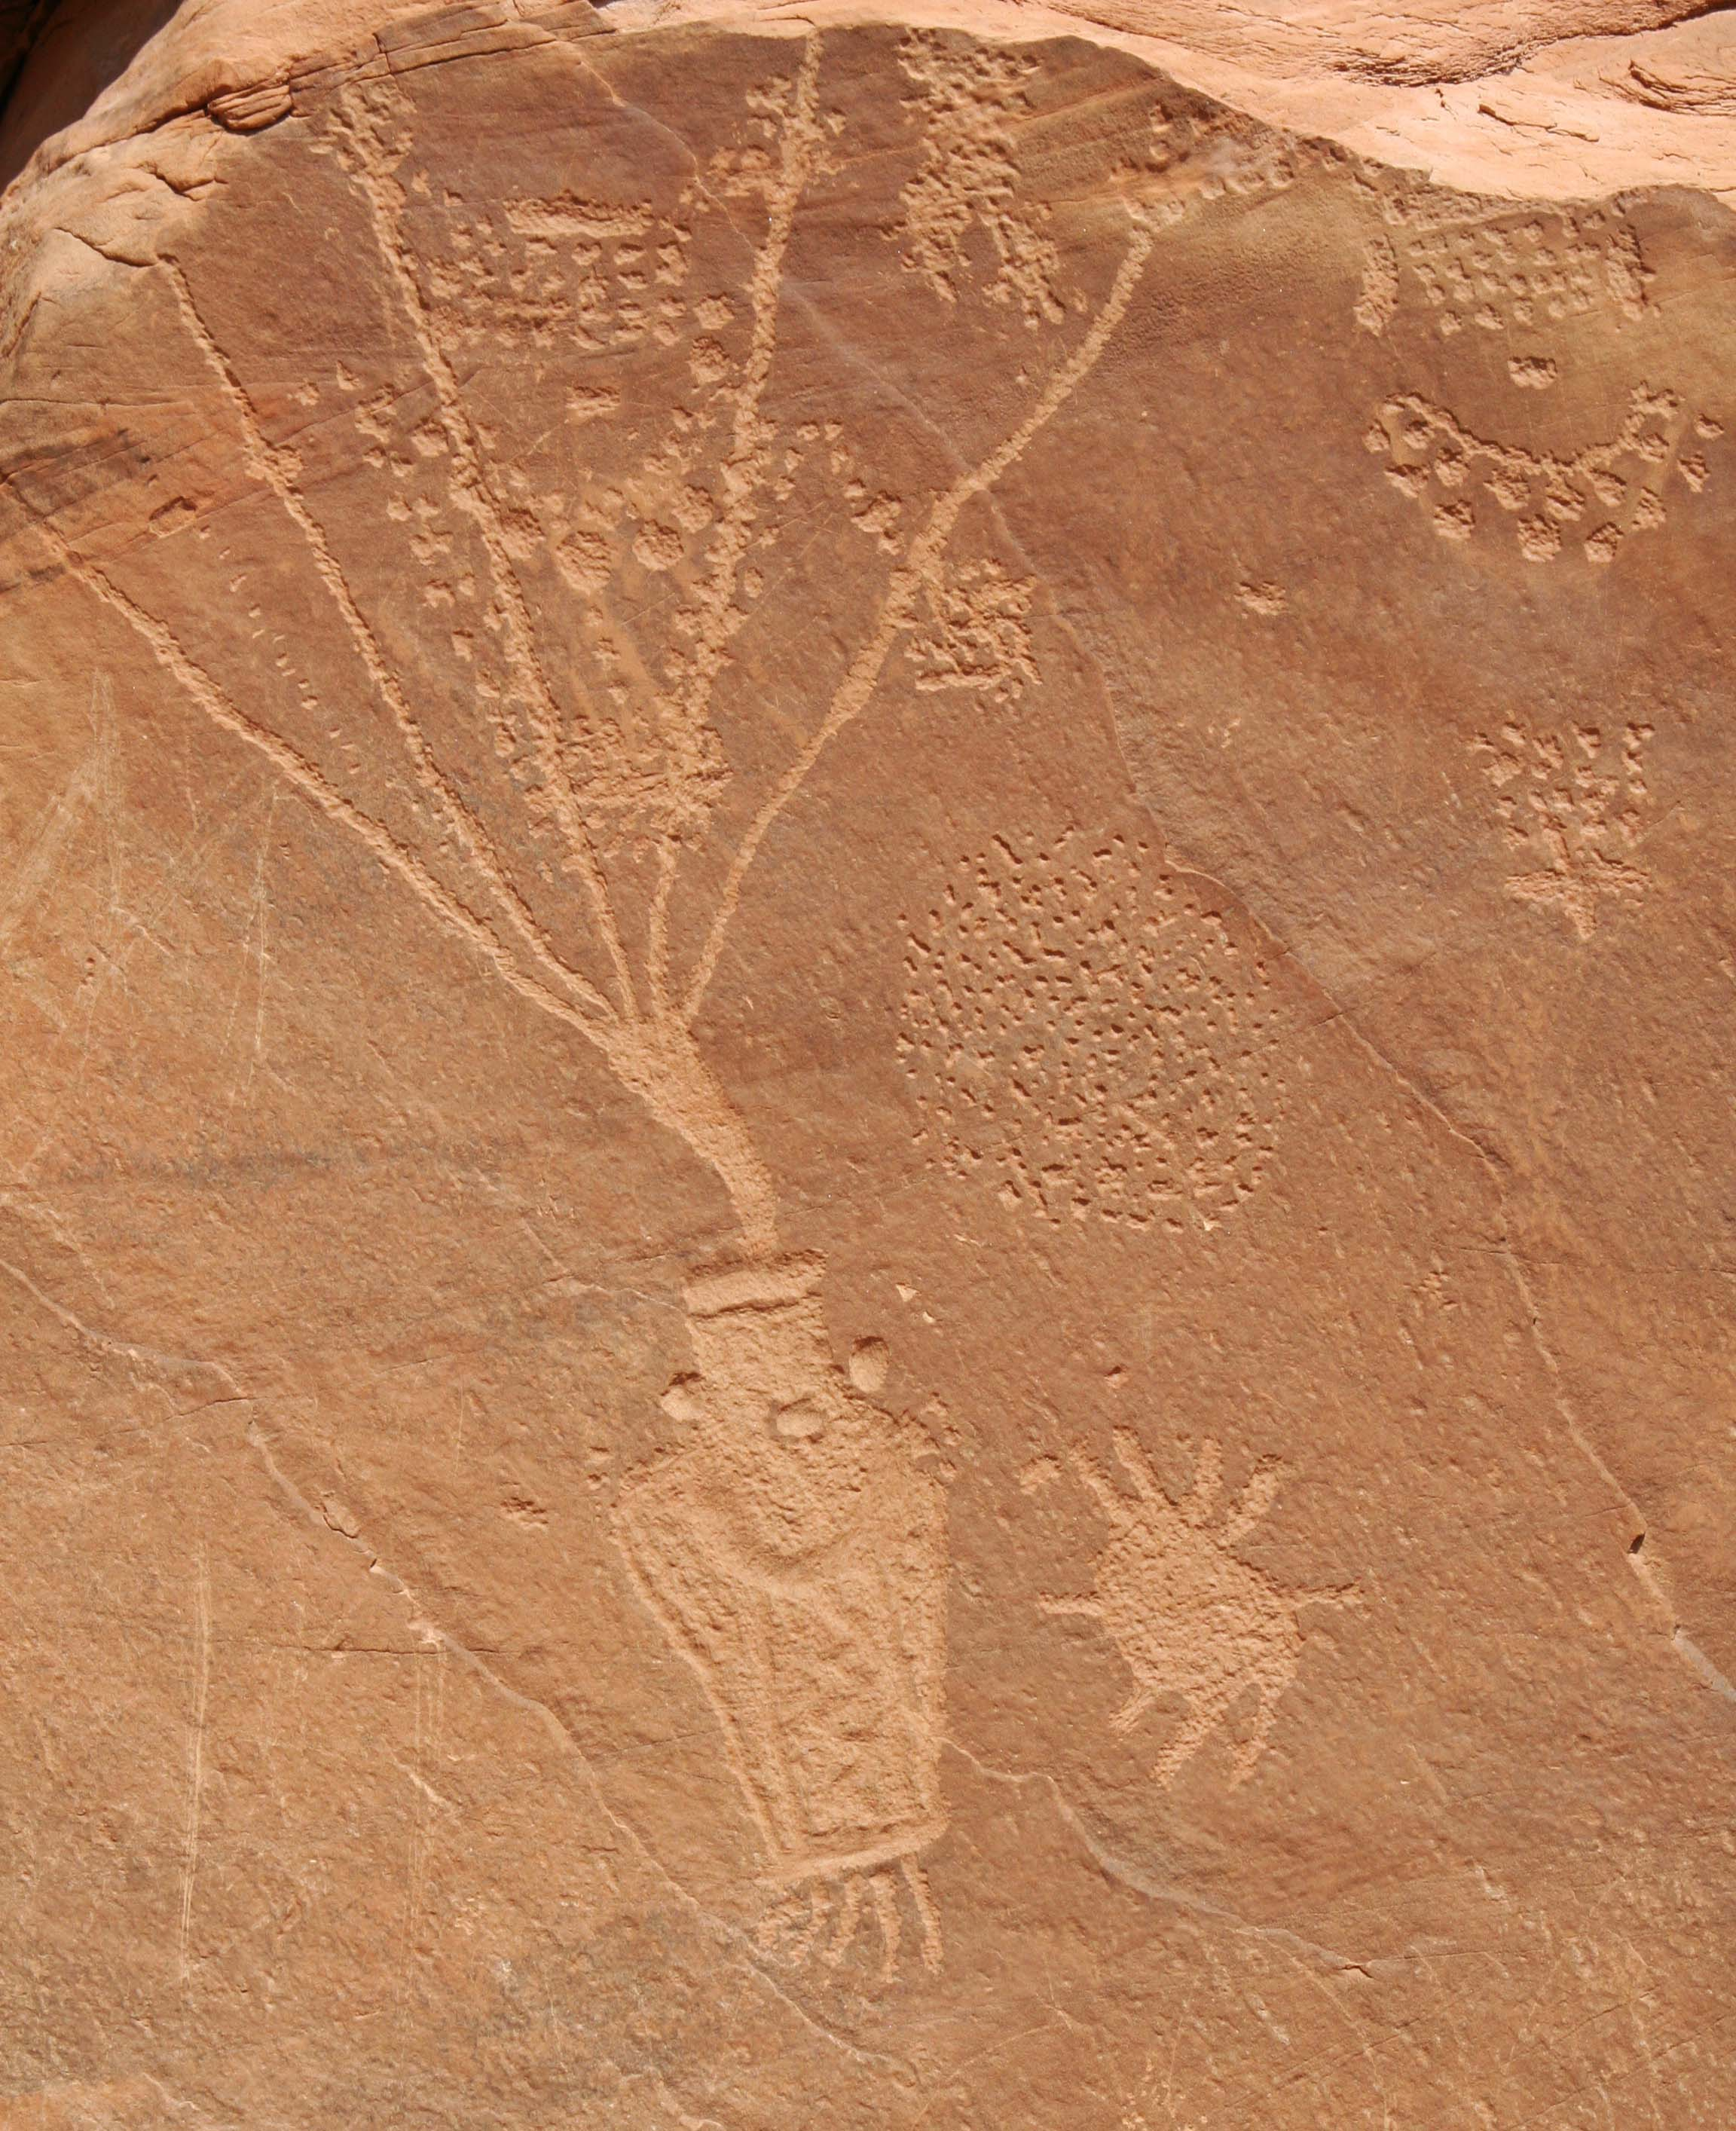 Dinosaur National Monument petroglyph.